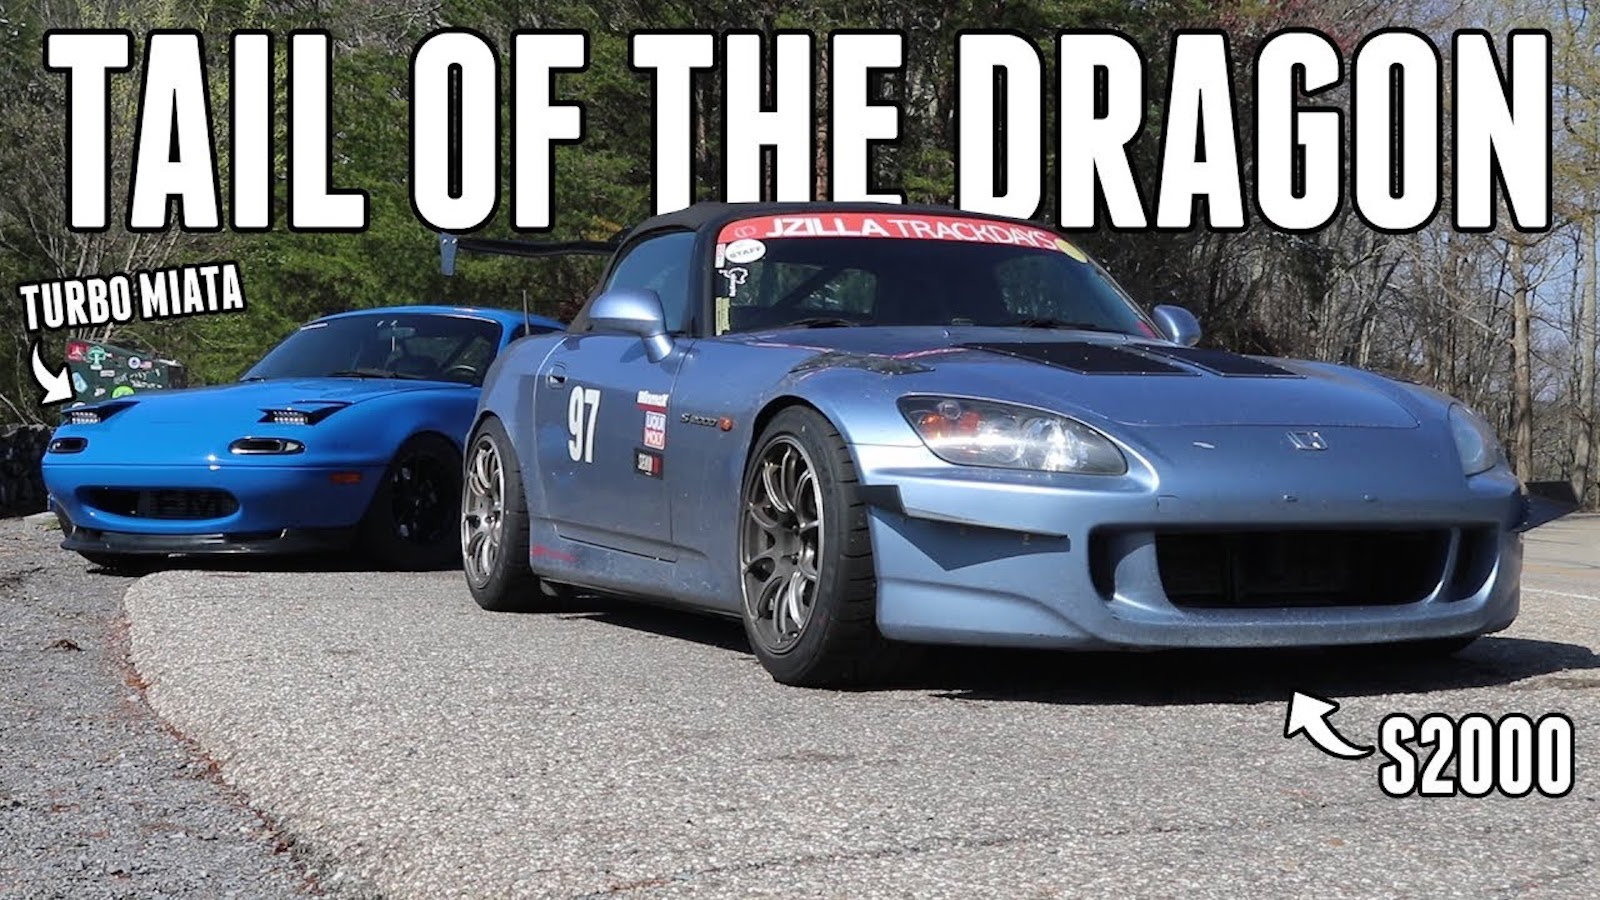 Is the S2000 Better than the Miata?